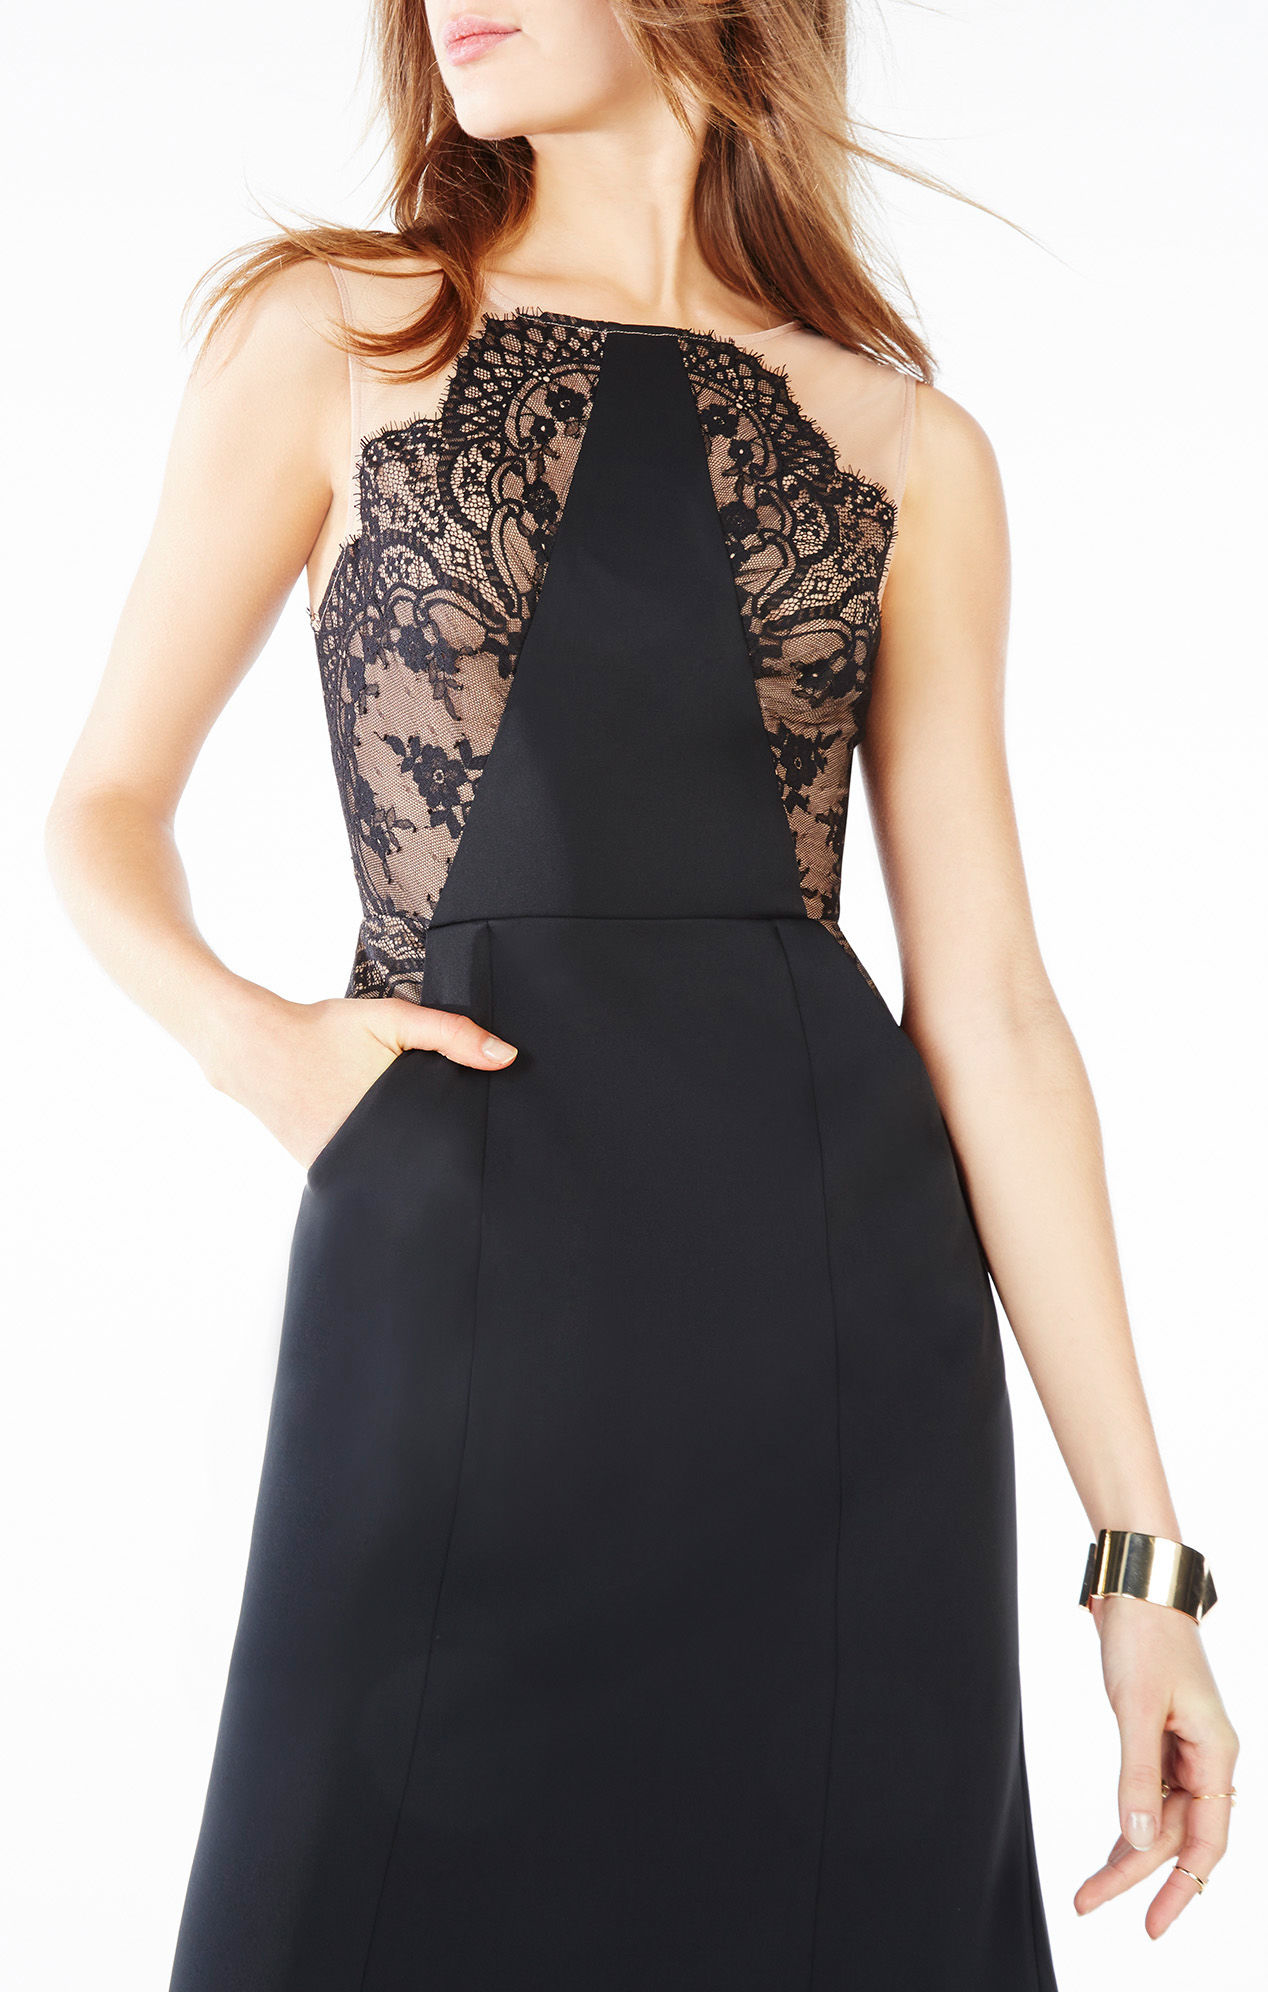 Lyst - Bcbgmaxazria Lilyana Lace-blocked Gown in Black